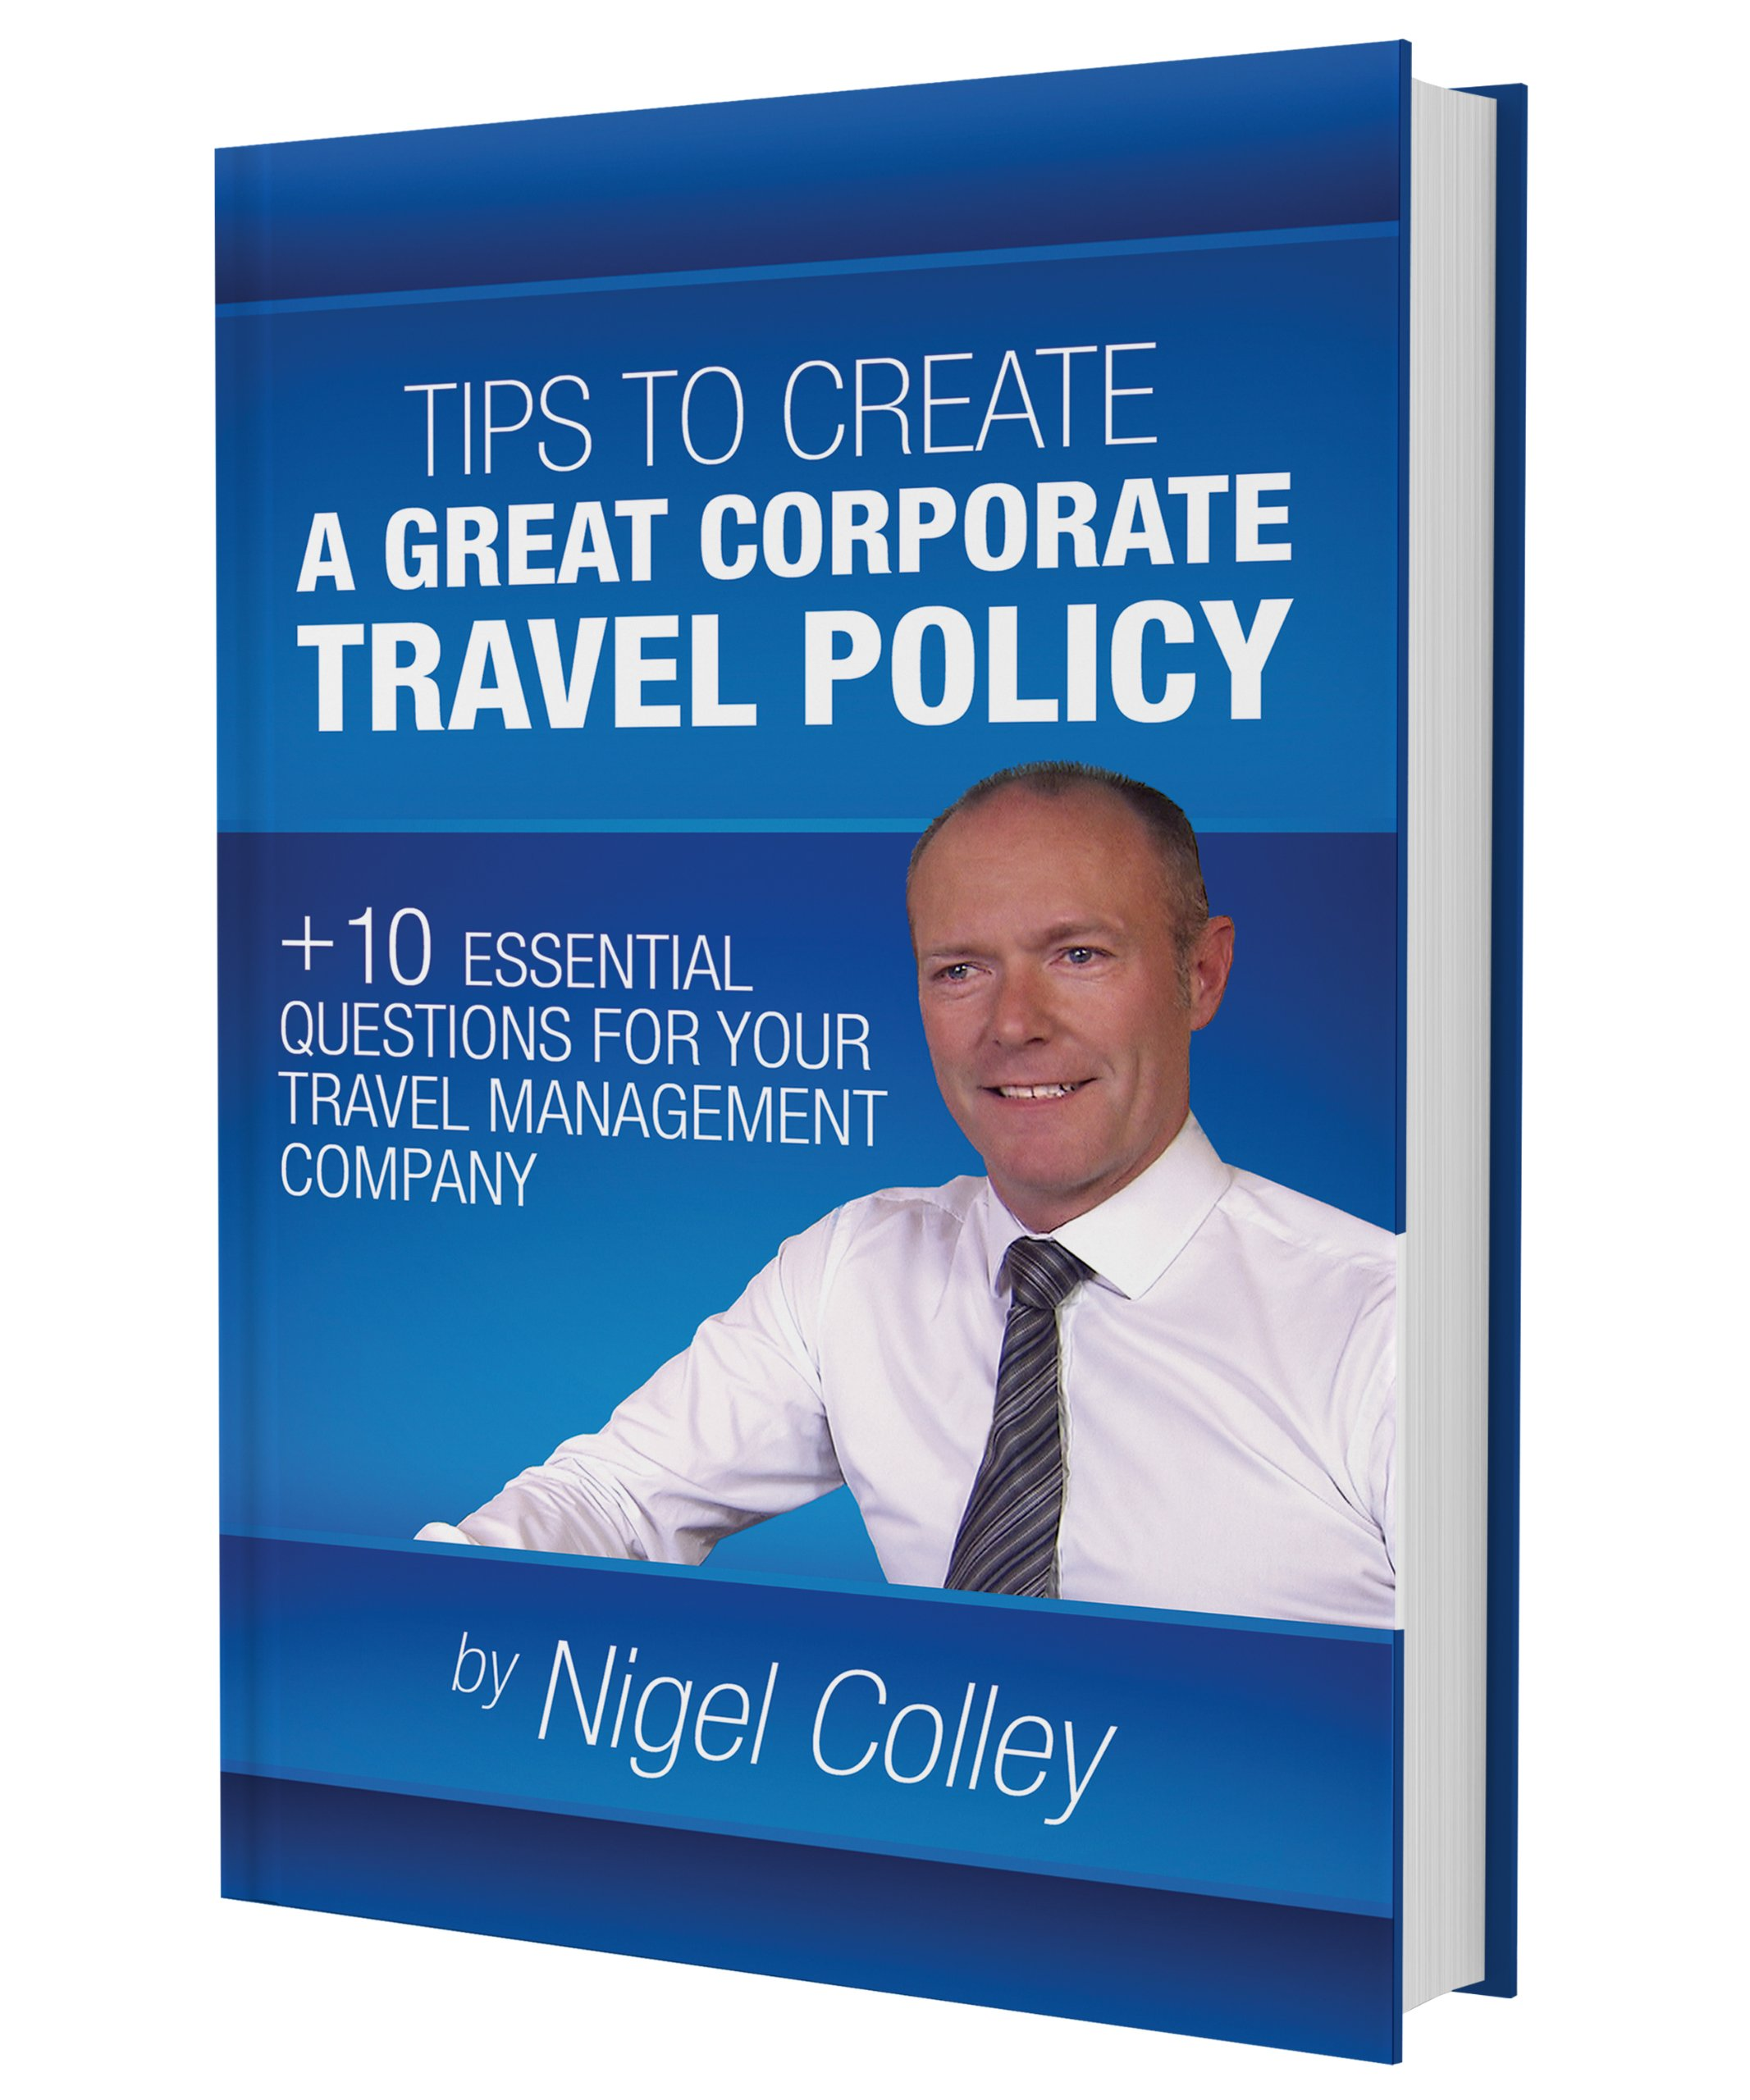 Tips to create a great corporate travel policy + 10 essential questions for your travel management company